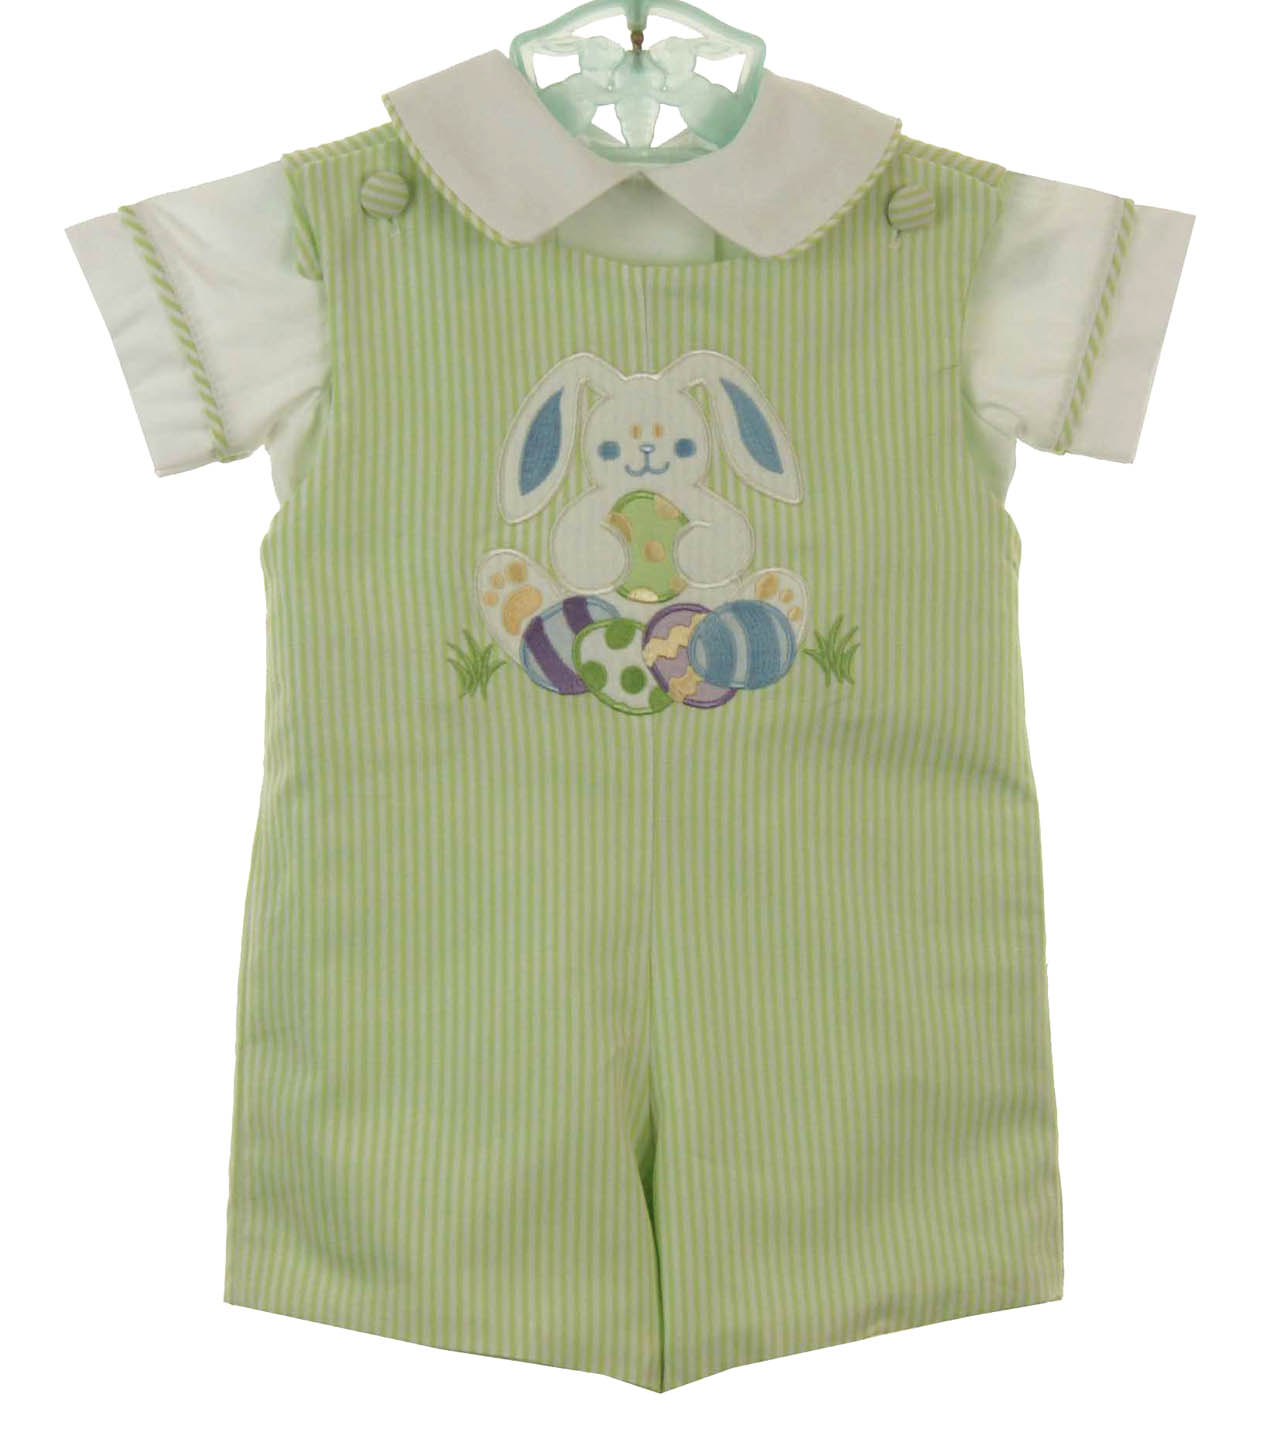 0c7383261 NEW Glorimont Reversible Green Cotton Oxford Striped Shortall and ...